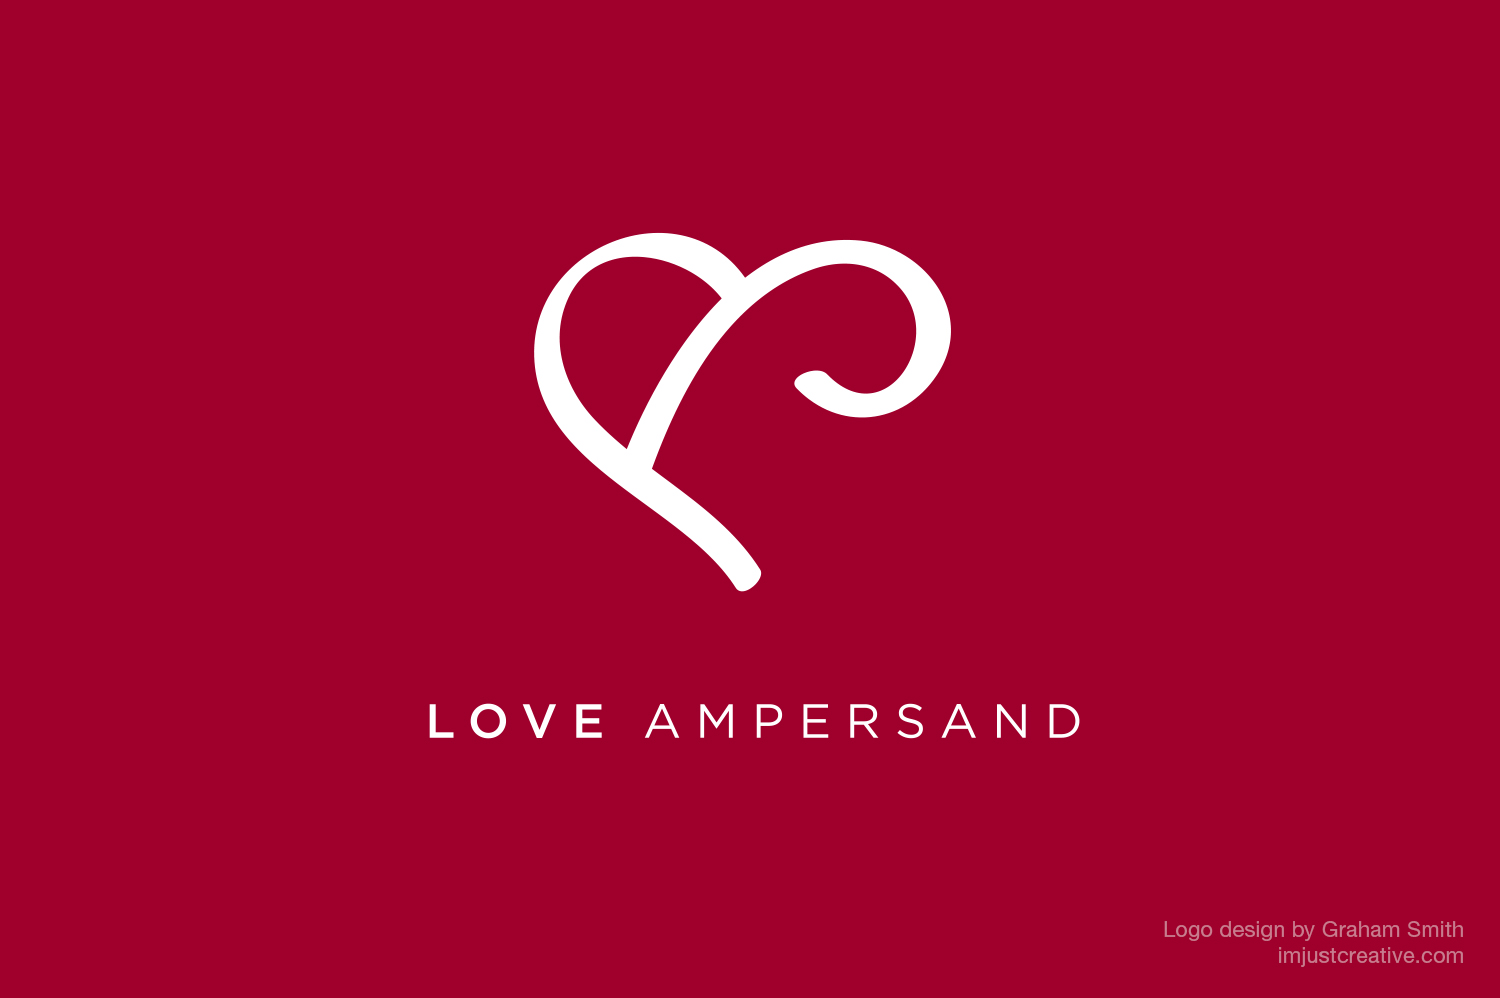 Love Ampersand Logo Design by imjustcreative